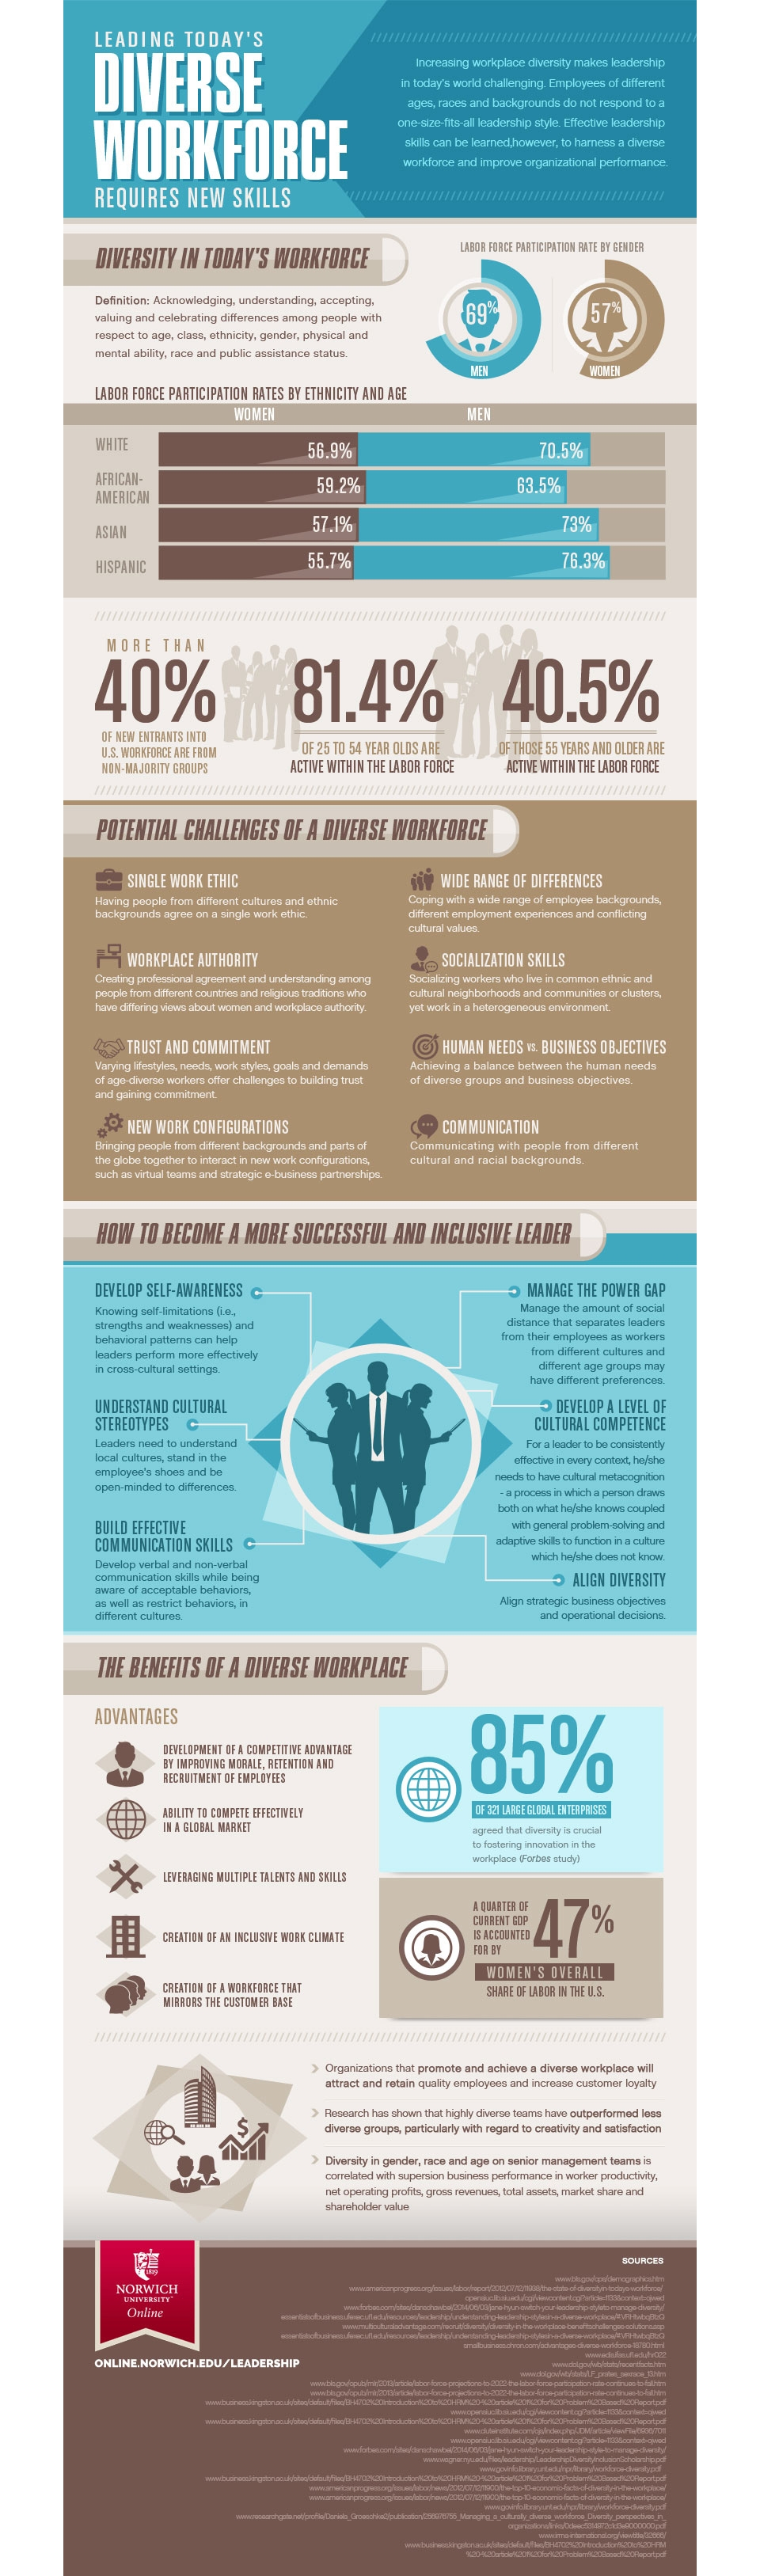 diverse workforce infographic image